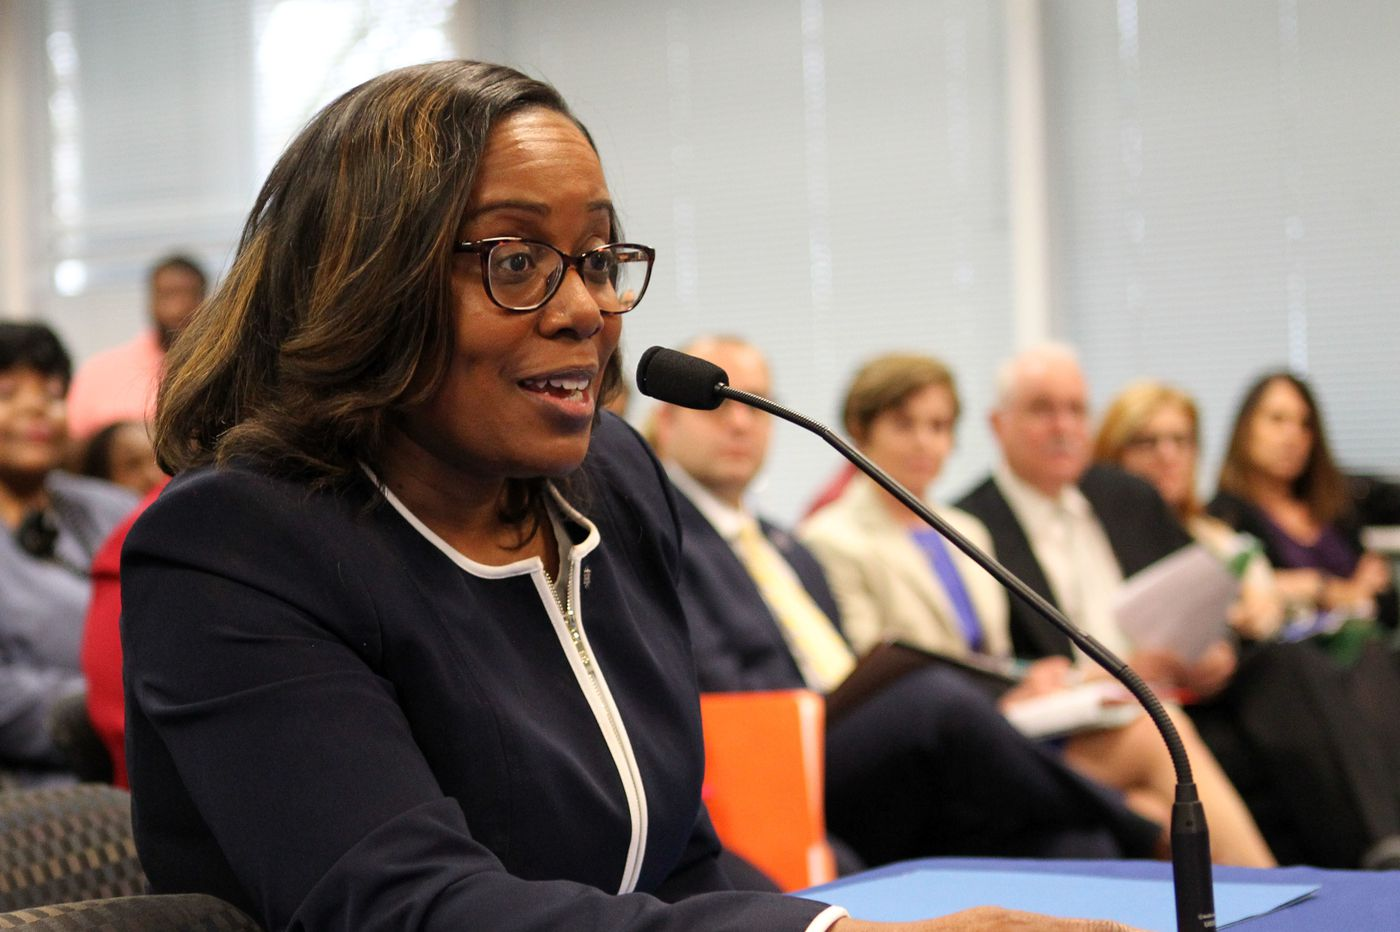 Katrina McCombs appointed new Camden schools chief amid fiscal troubles